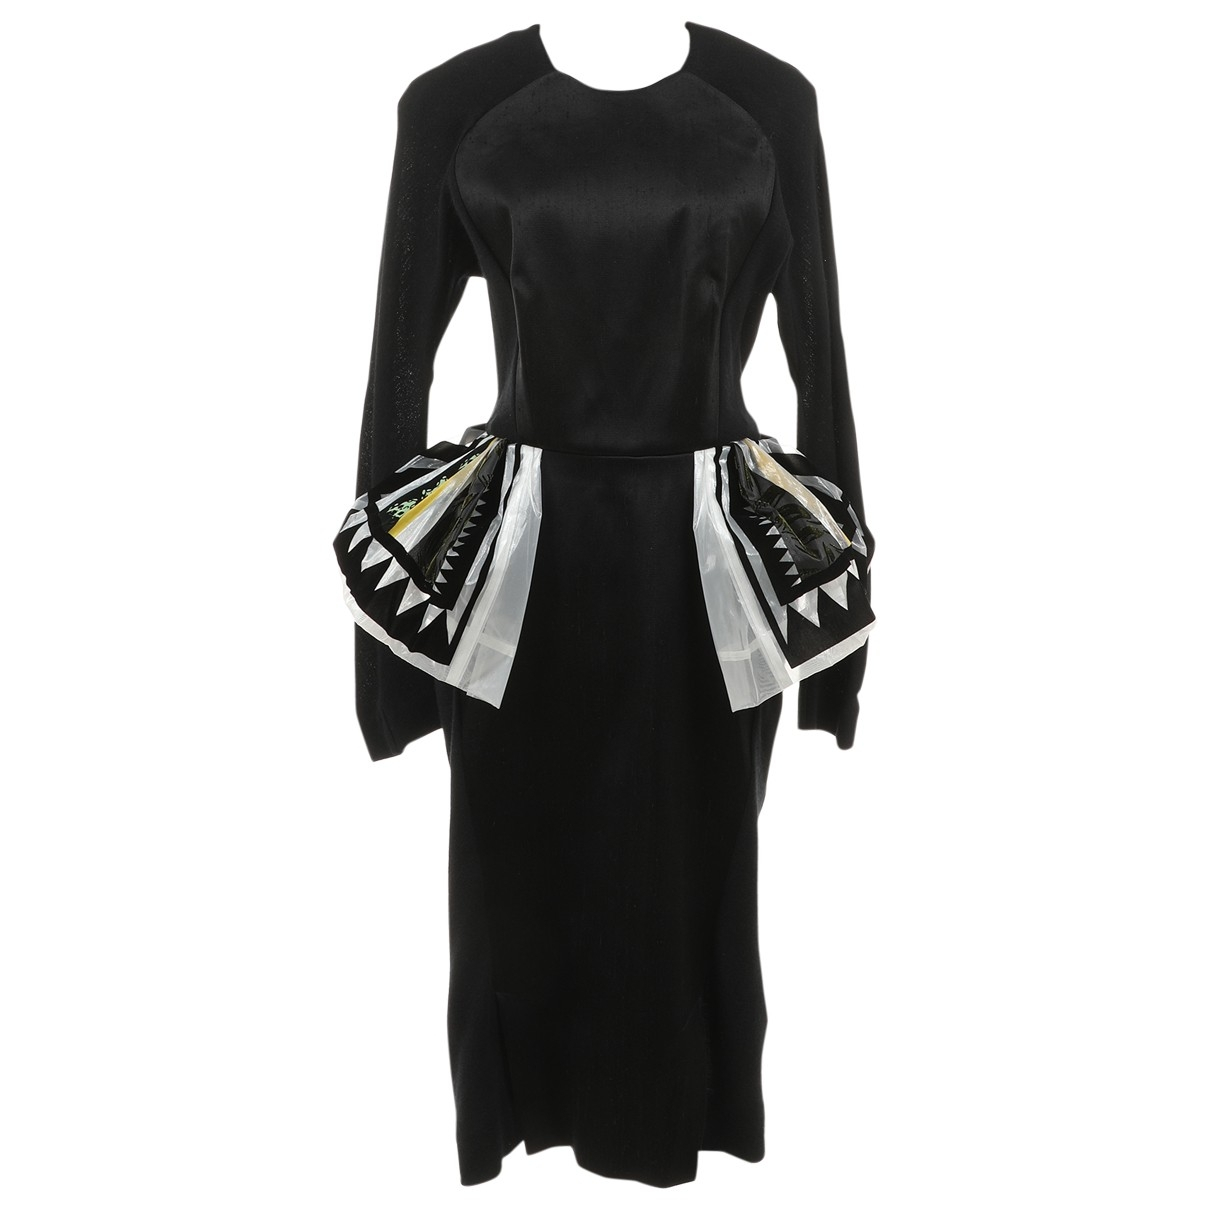 Toga Archives N Black Wool dress for Women 1 0-5